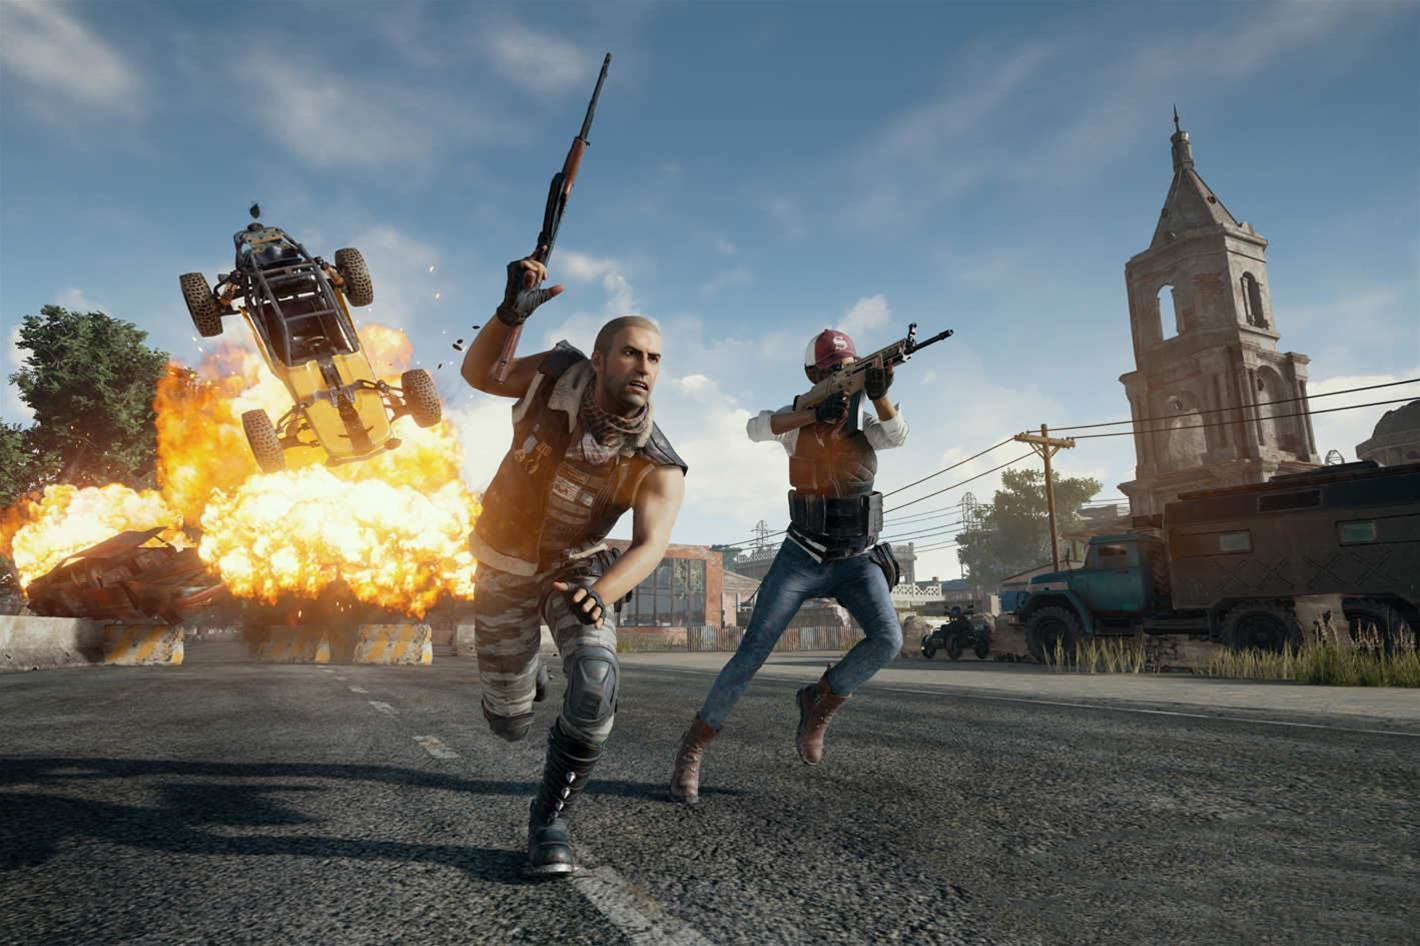 PlayerUnknown's Battlegrounds gets MA 15+ classification in Australia